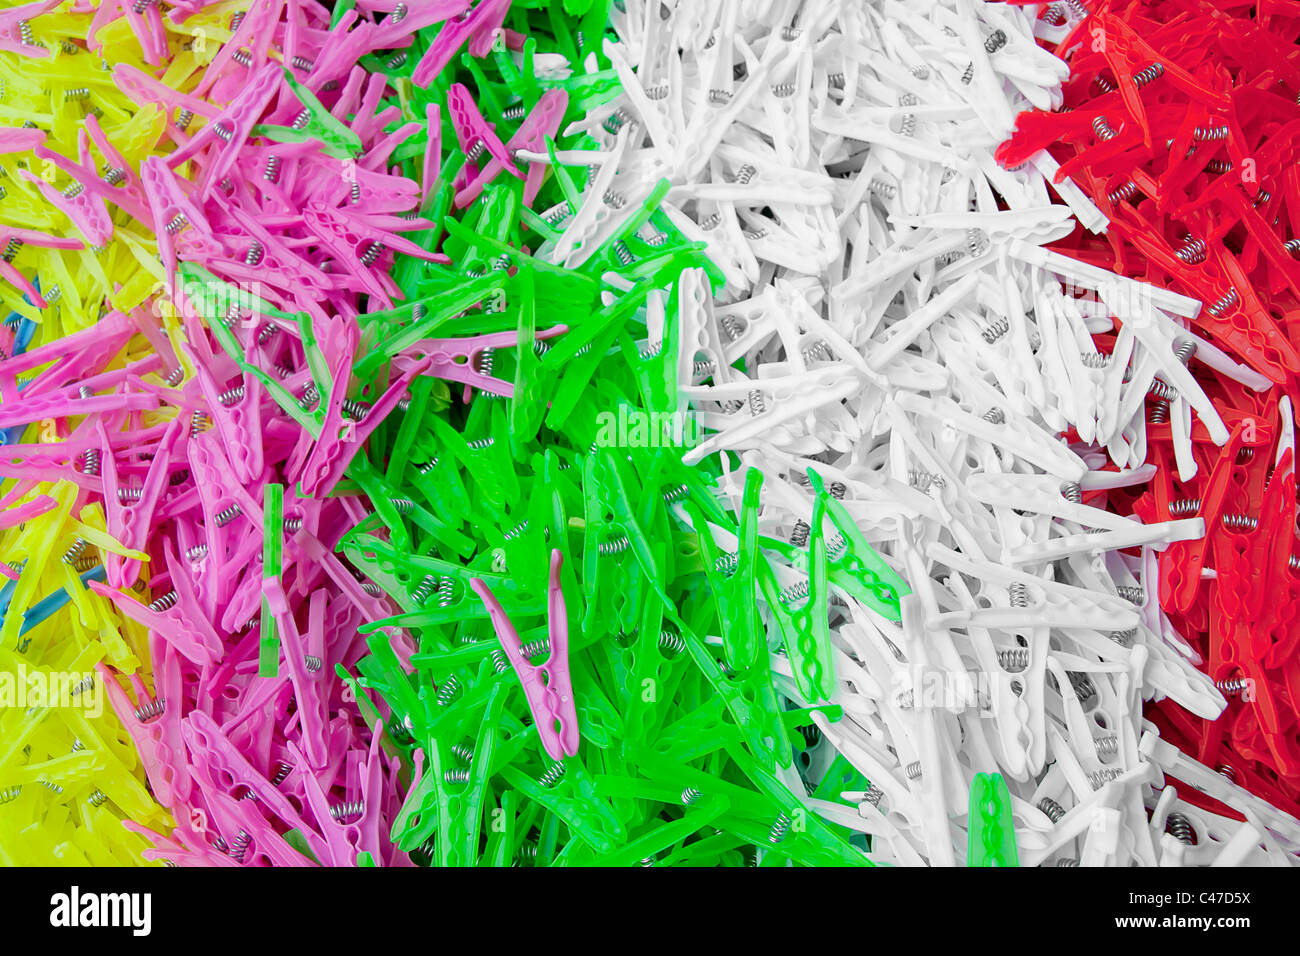 Different colored plastic clothes pins on a counter in an open marketplace Stock Photo